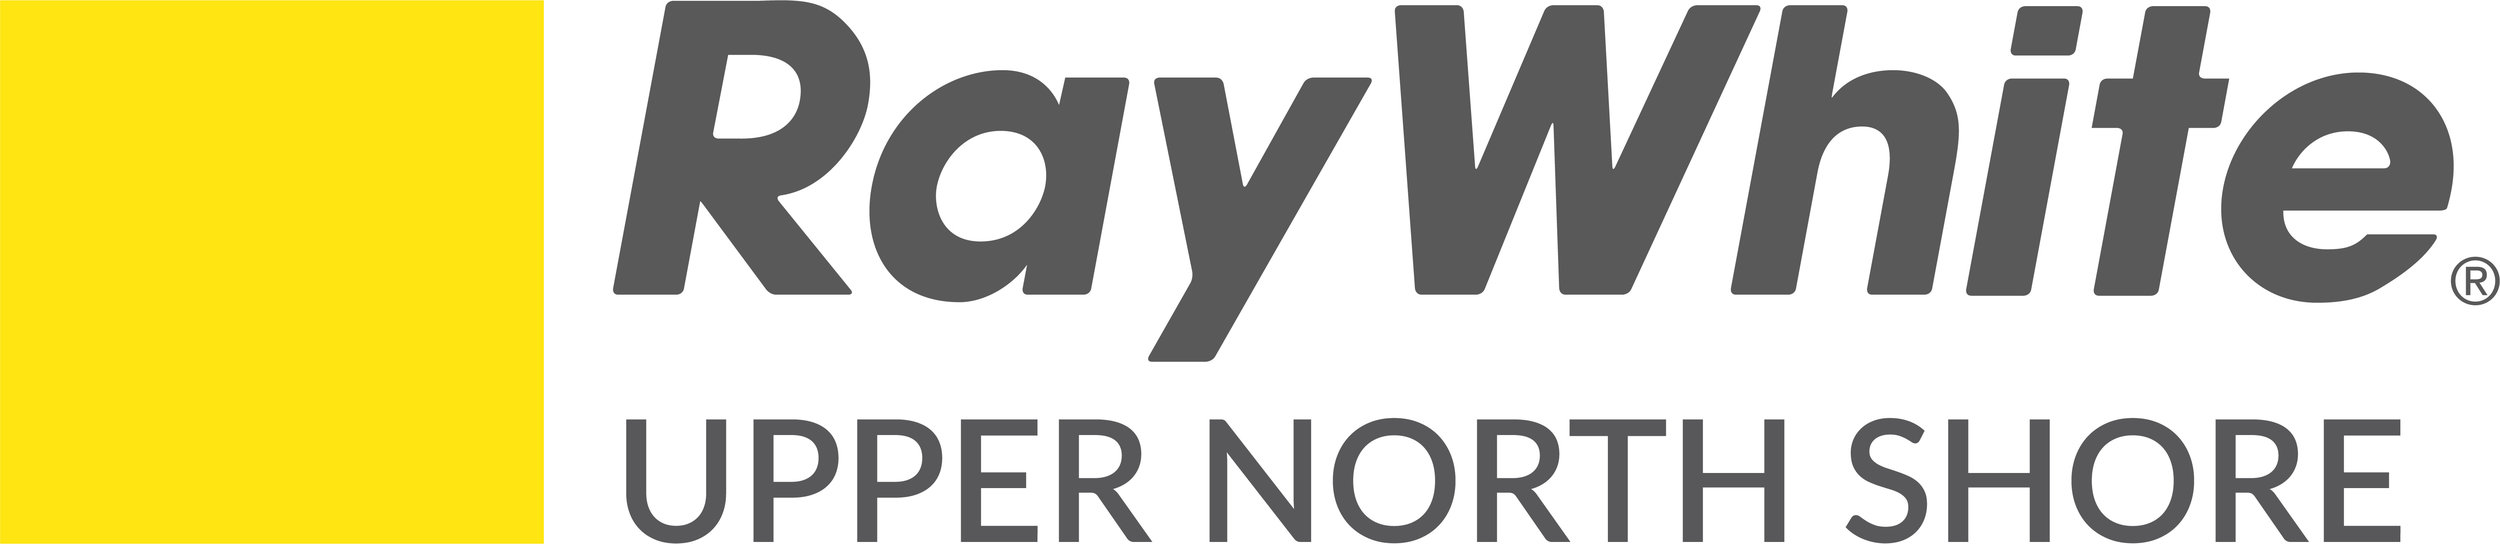 Ray White Upper North Shore RGB-01.jpg